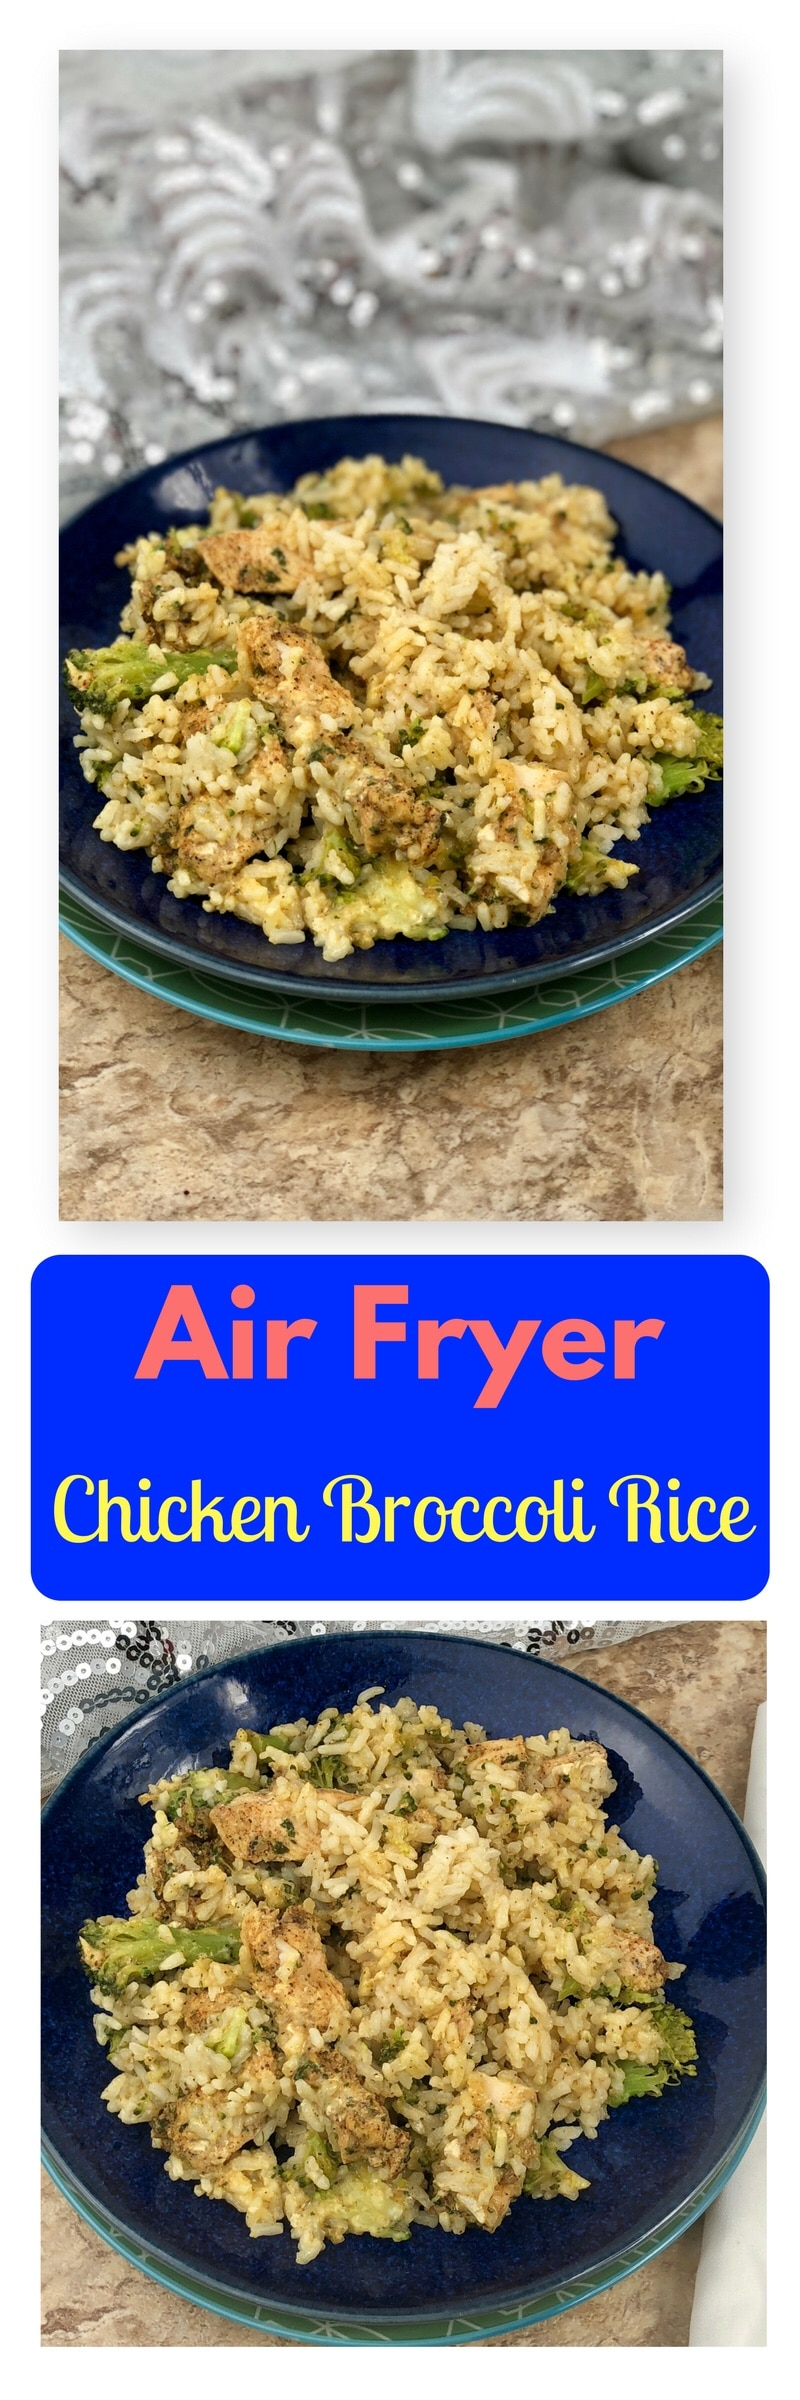 Let me welcome you all to one of my favoriteAir Fryer dishes. This creamy Creamy Air Fryer Chicken Broccoli Rice is a very simple recipe to make that creates a single serve dish. You create that all-in-one healthy dinner in foilpackets that are rich in flavor and will leave your family feeling satisfied. If you serve the chicken broccoli rice in the packets, there is a lot less cleanup afterward! The chicken is nice and juicy from the foil sealing in the moisture as it cooks, it truly is a blue ribbon winning dish.